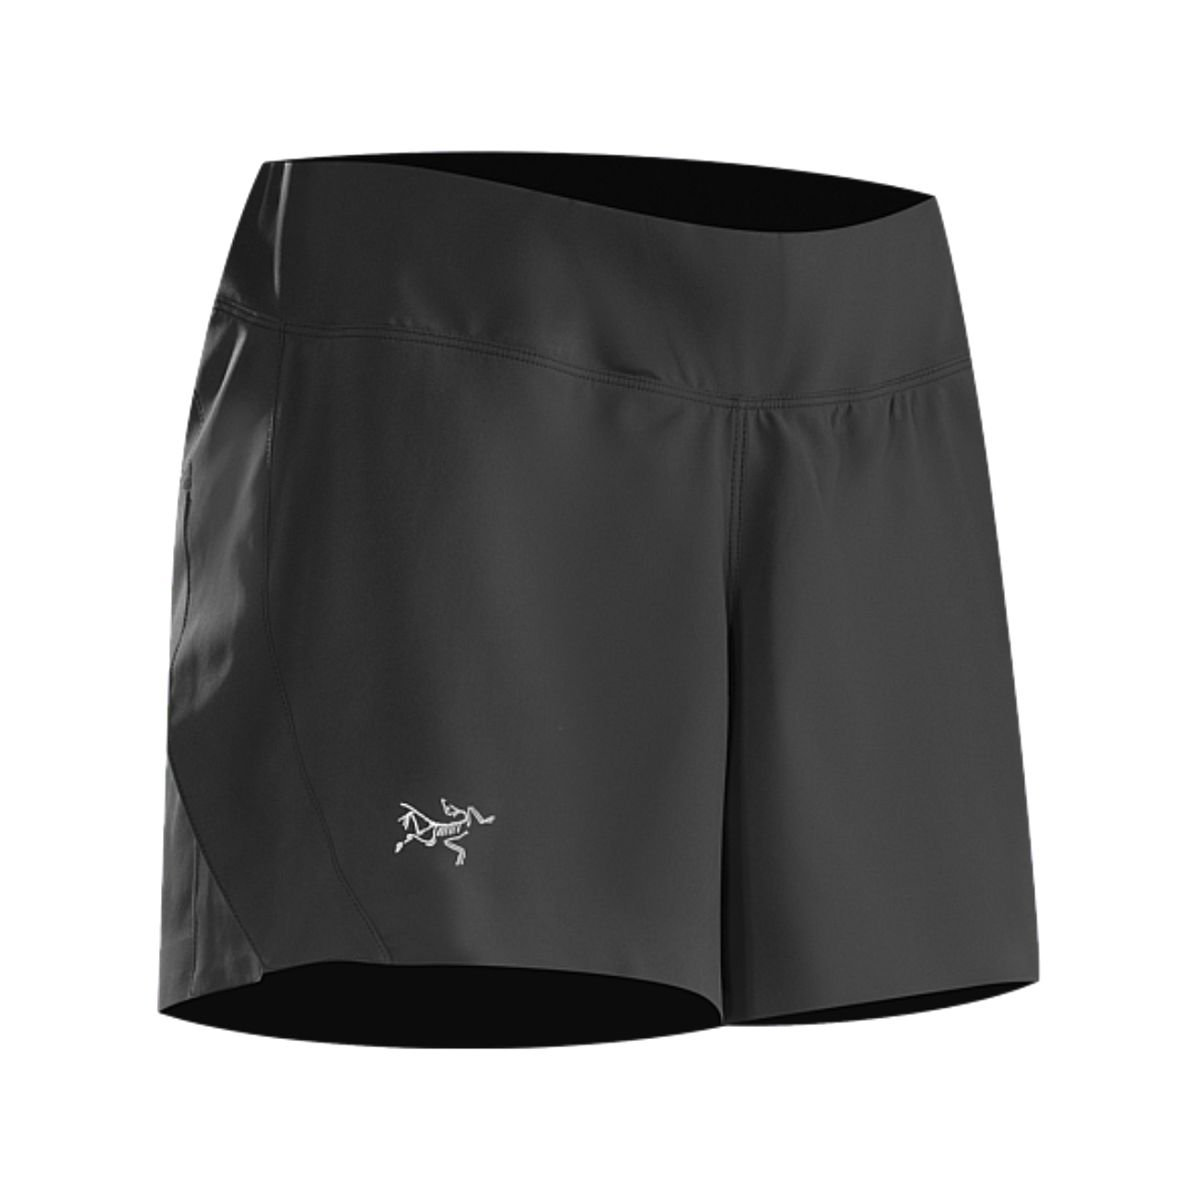 75f222721da5 Arcteryx Lyra Short - Women s at Amazon Women s Clothing store